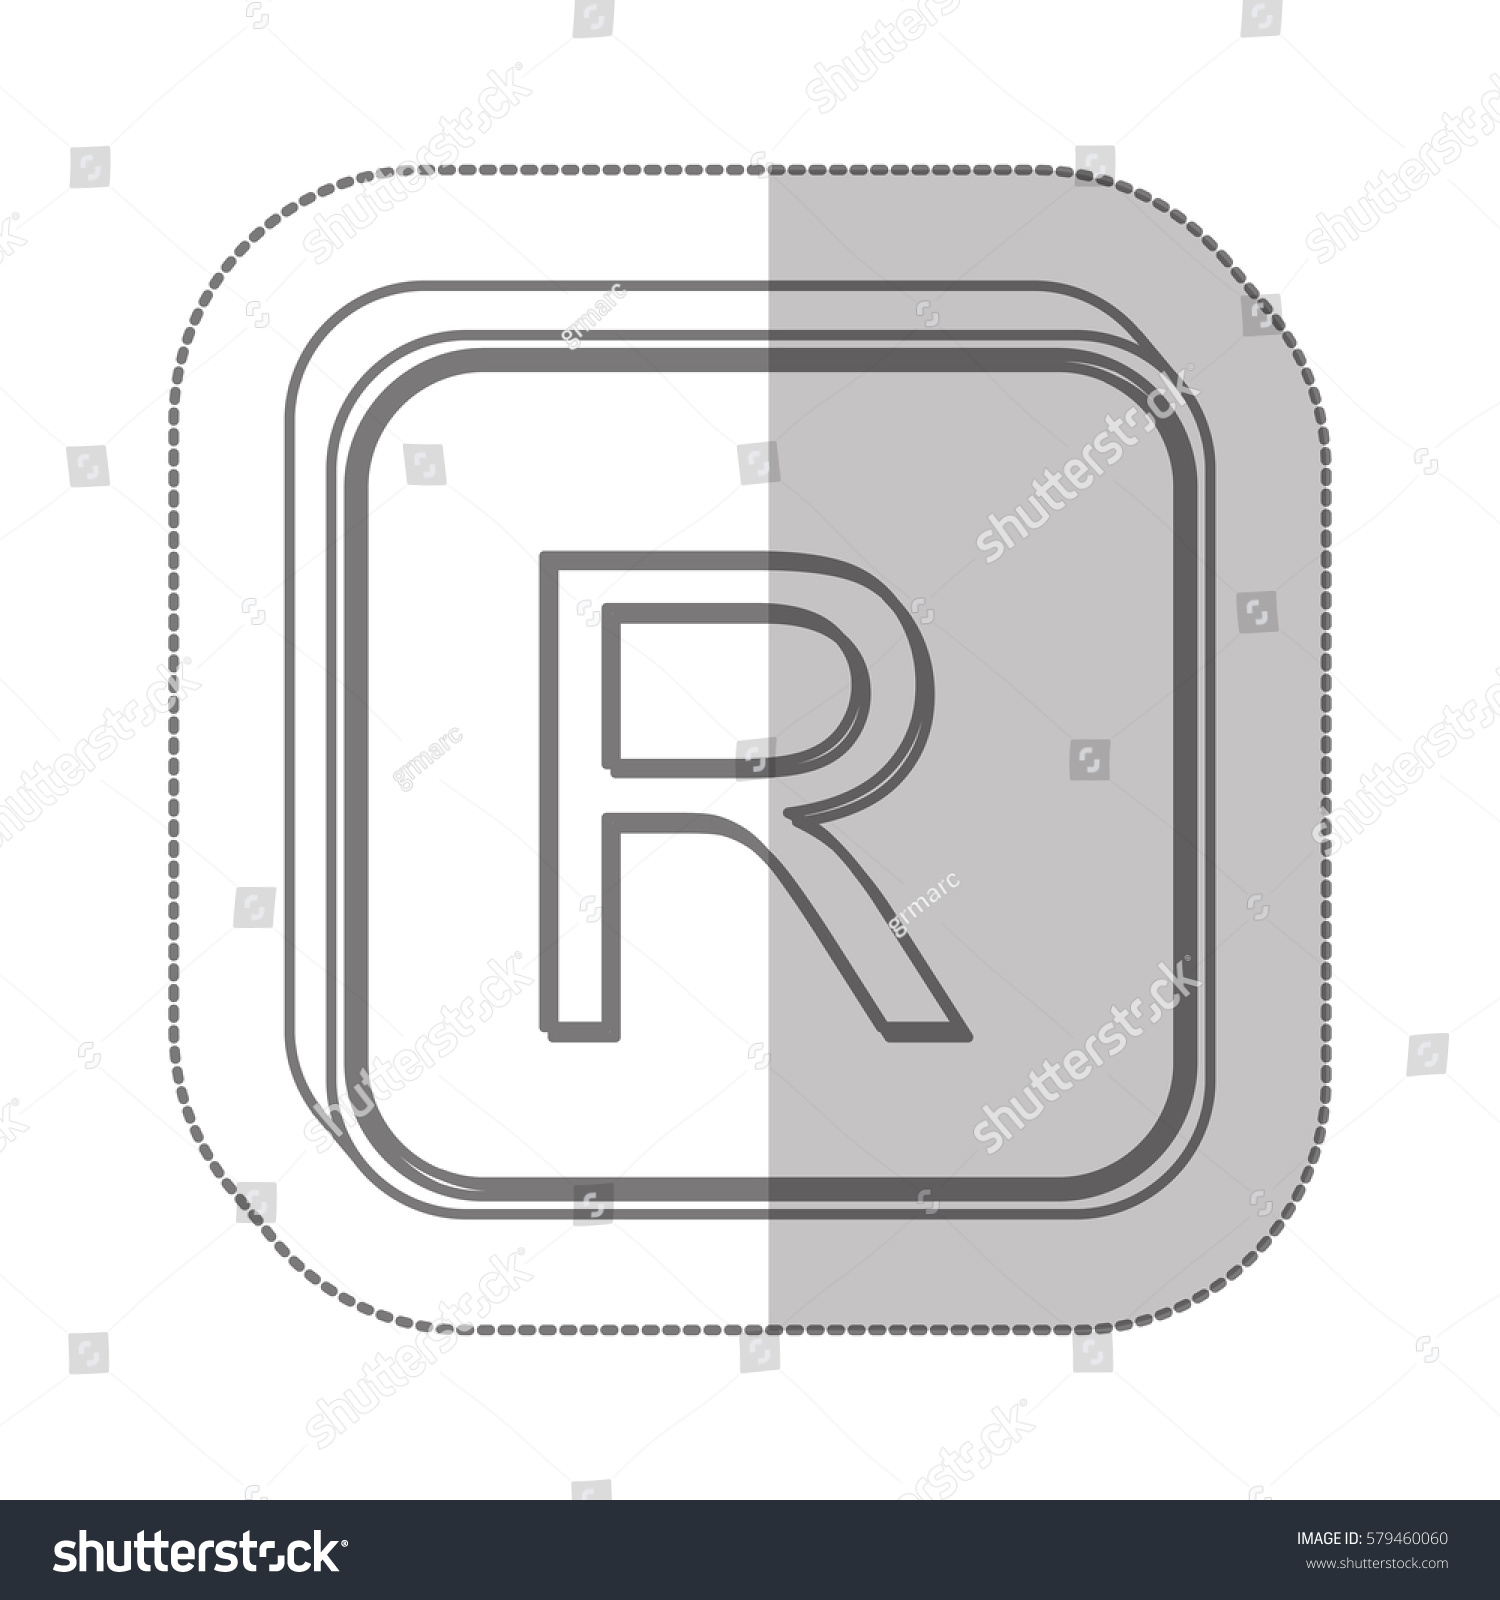 Rand currency symbol icon image vector stock vector 579460060 rand currency symbol icon image vector illustration buycottarizona